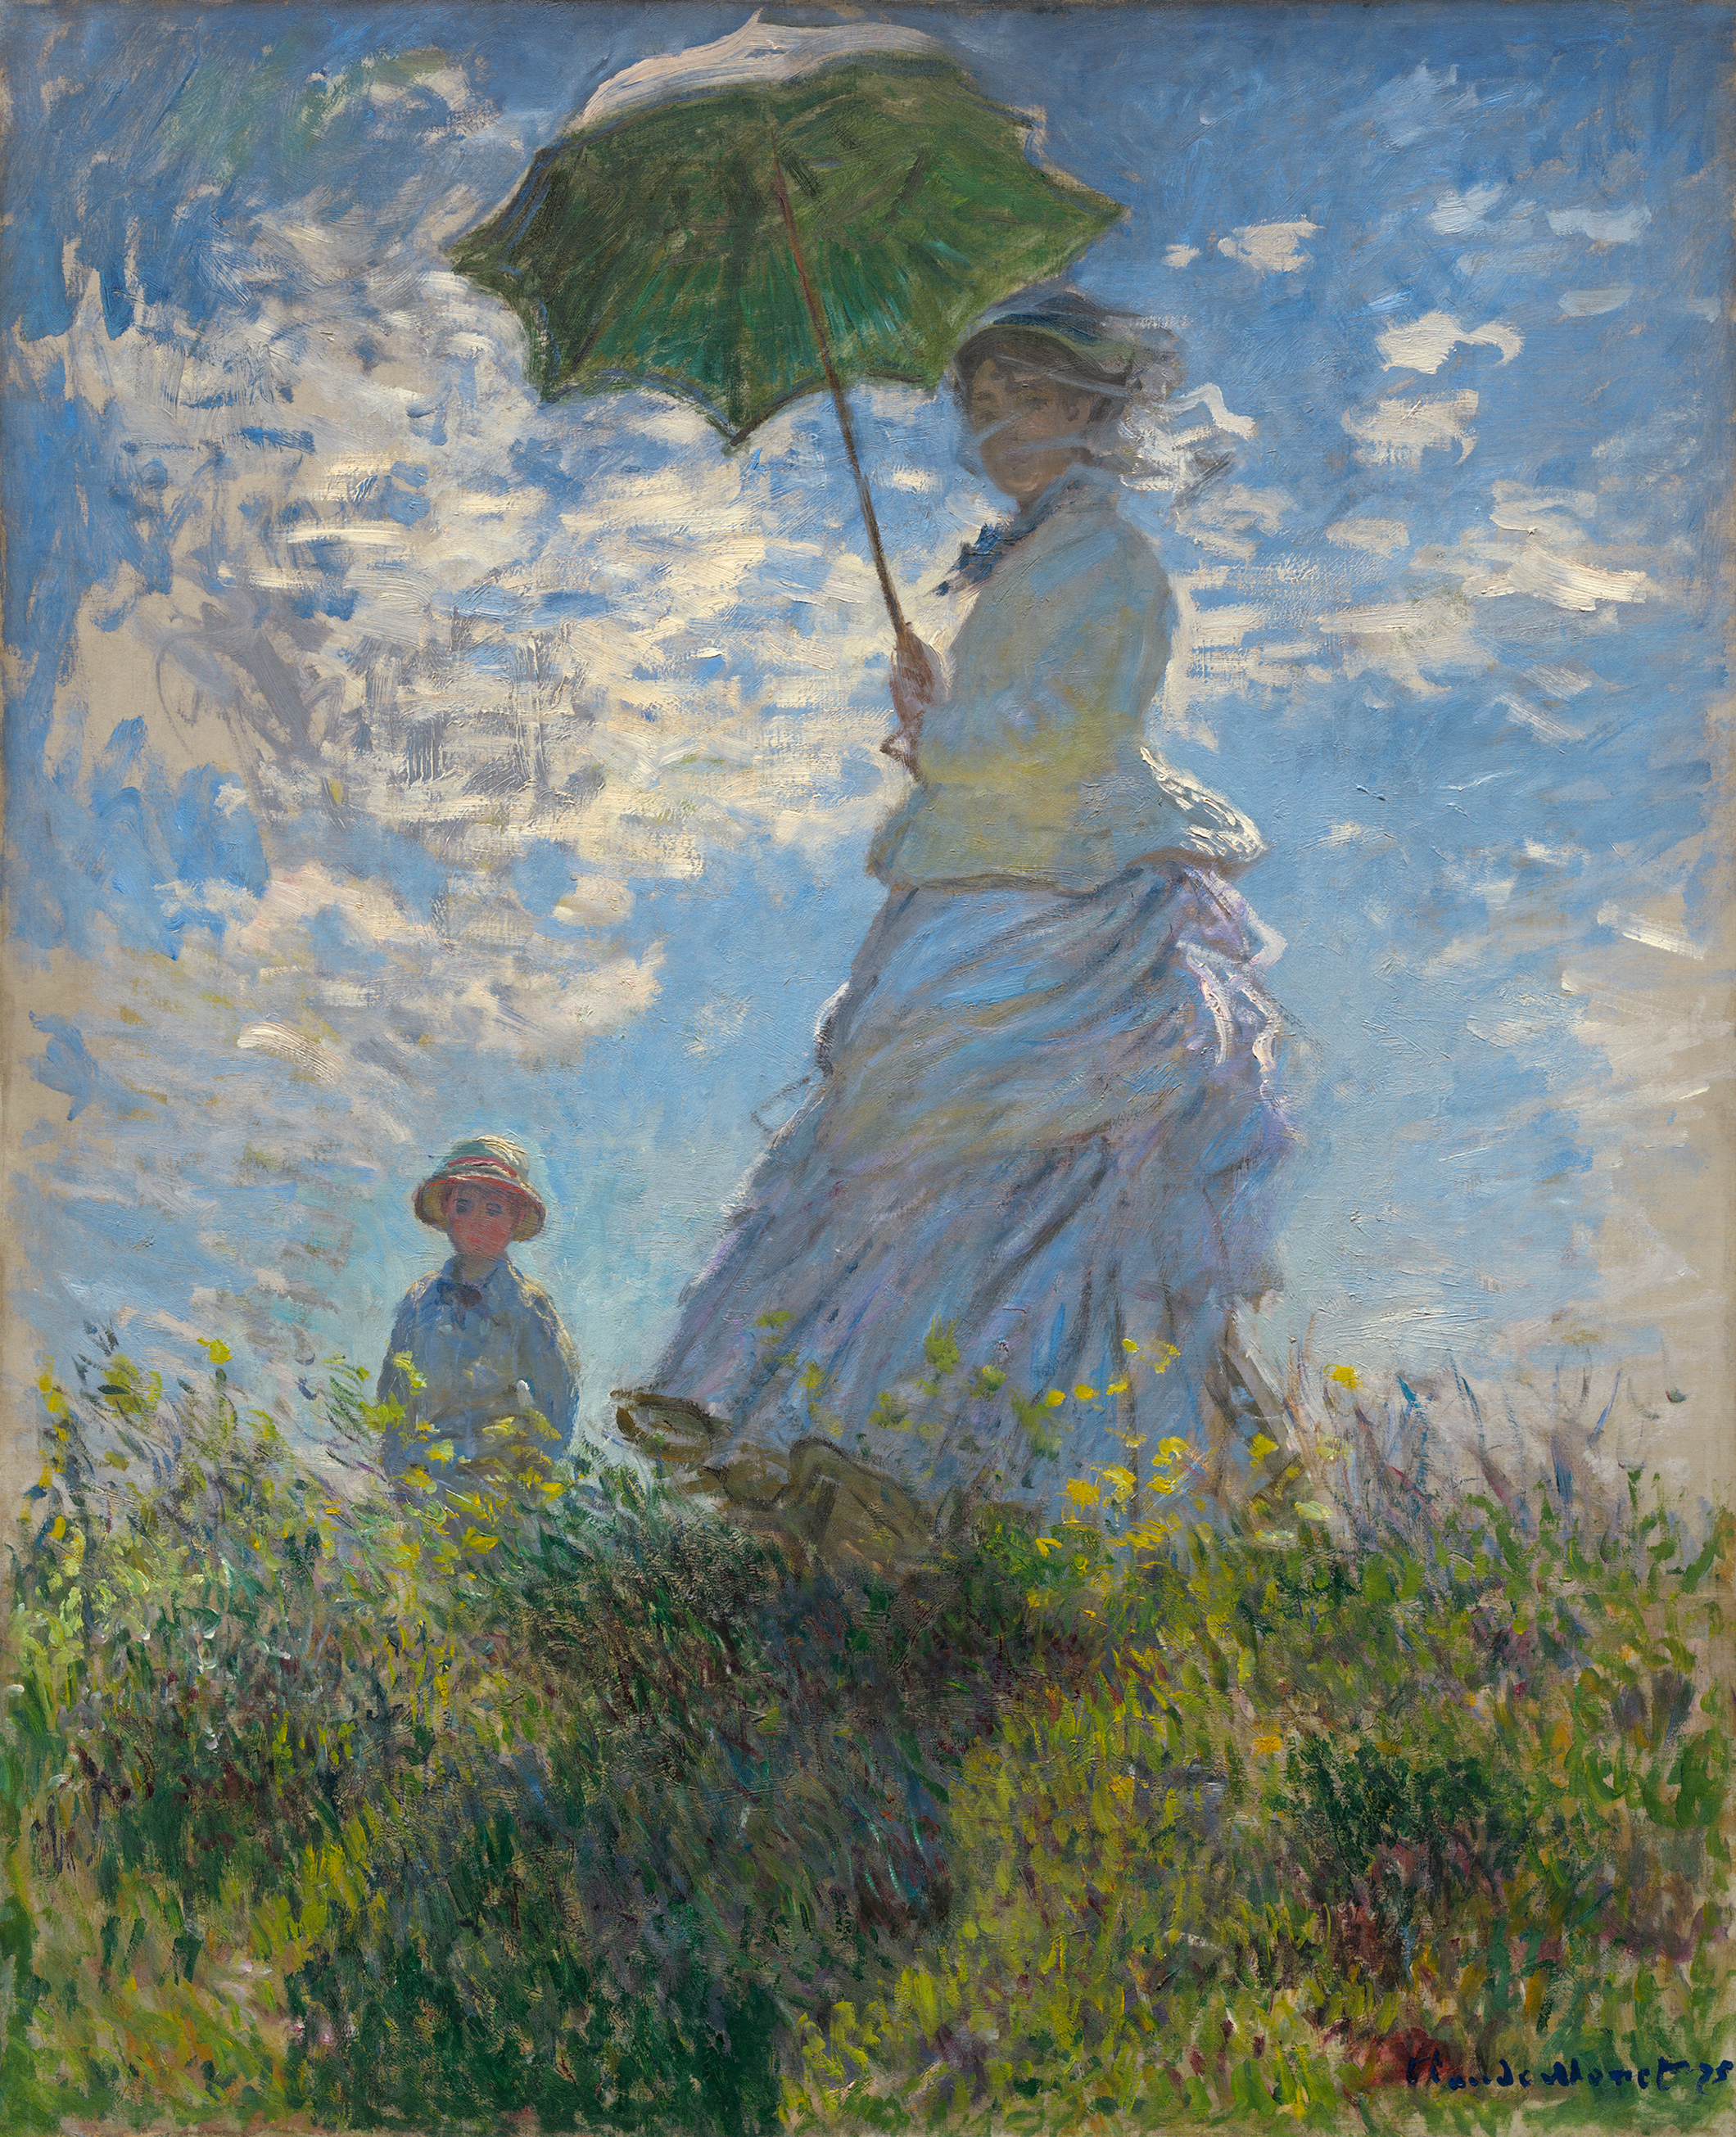 http://upload.wikimedia.org/wikipedia/commons/9/9a/Claude_Monet_011.jpg